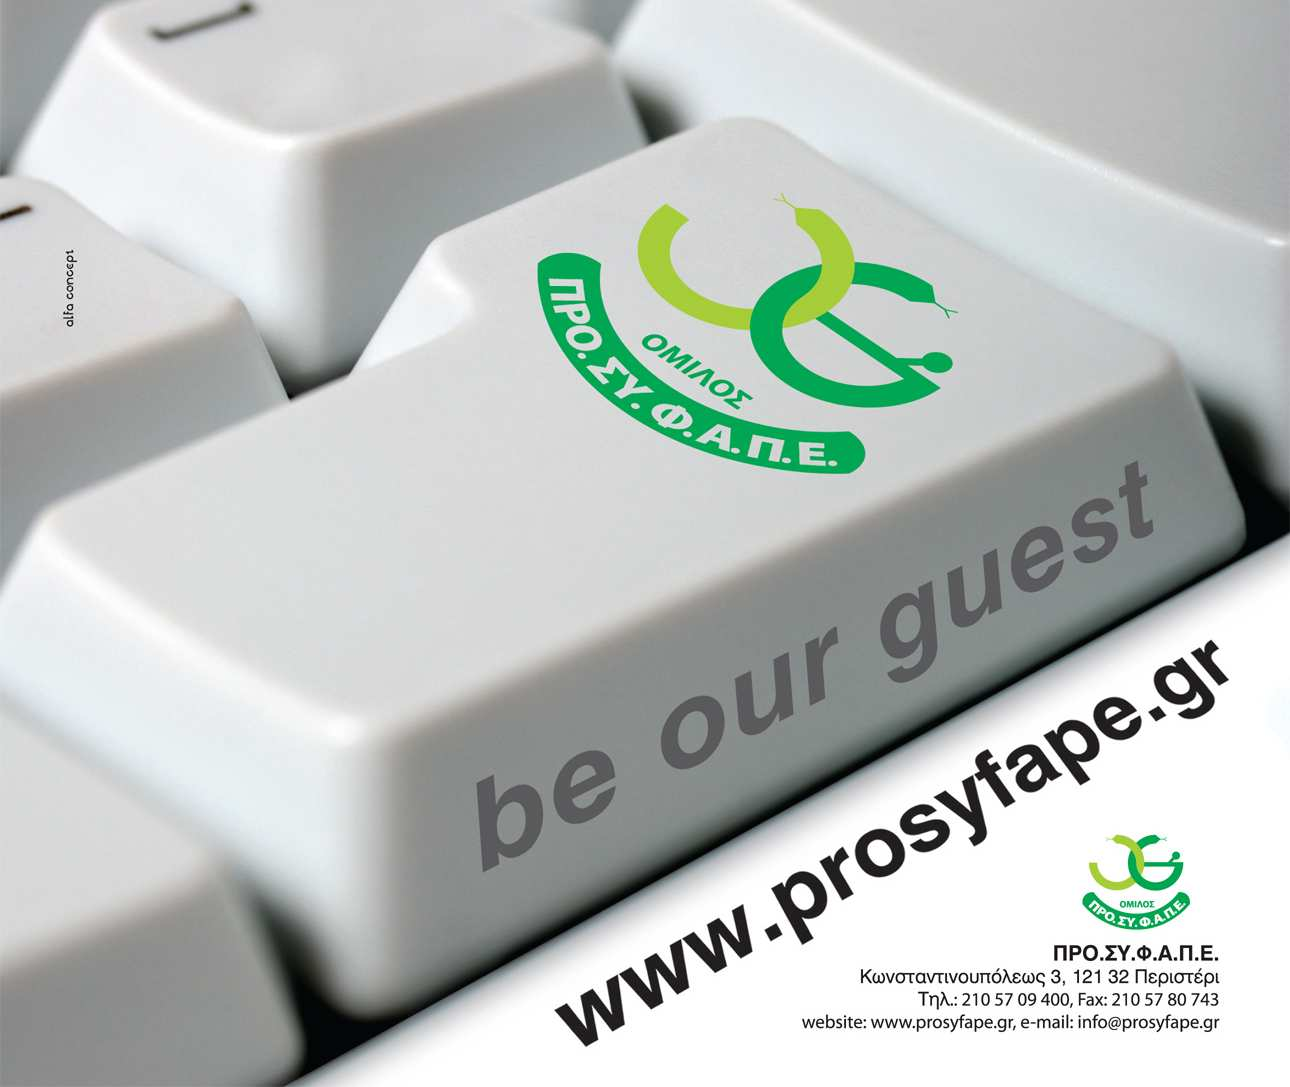 www.prosyfape.gr Be our guest!